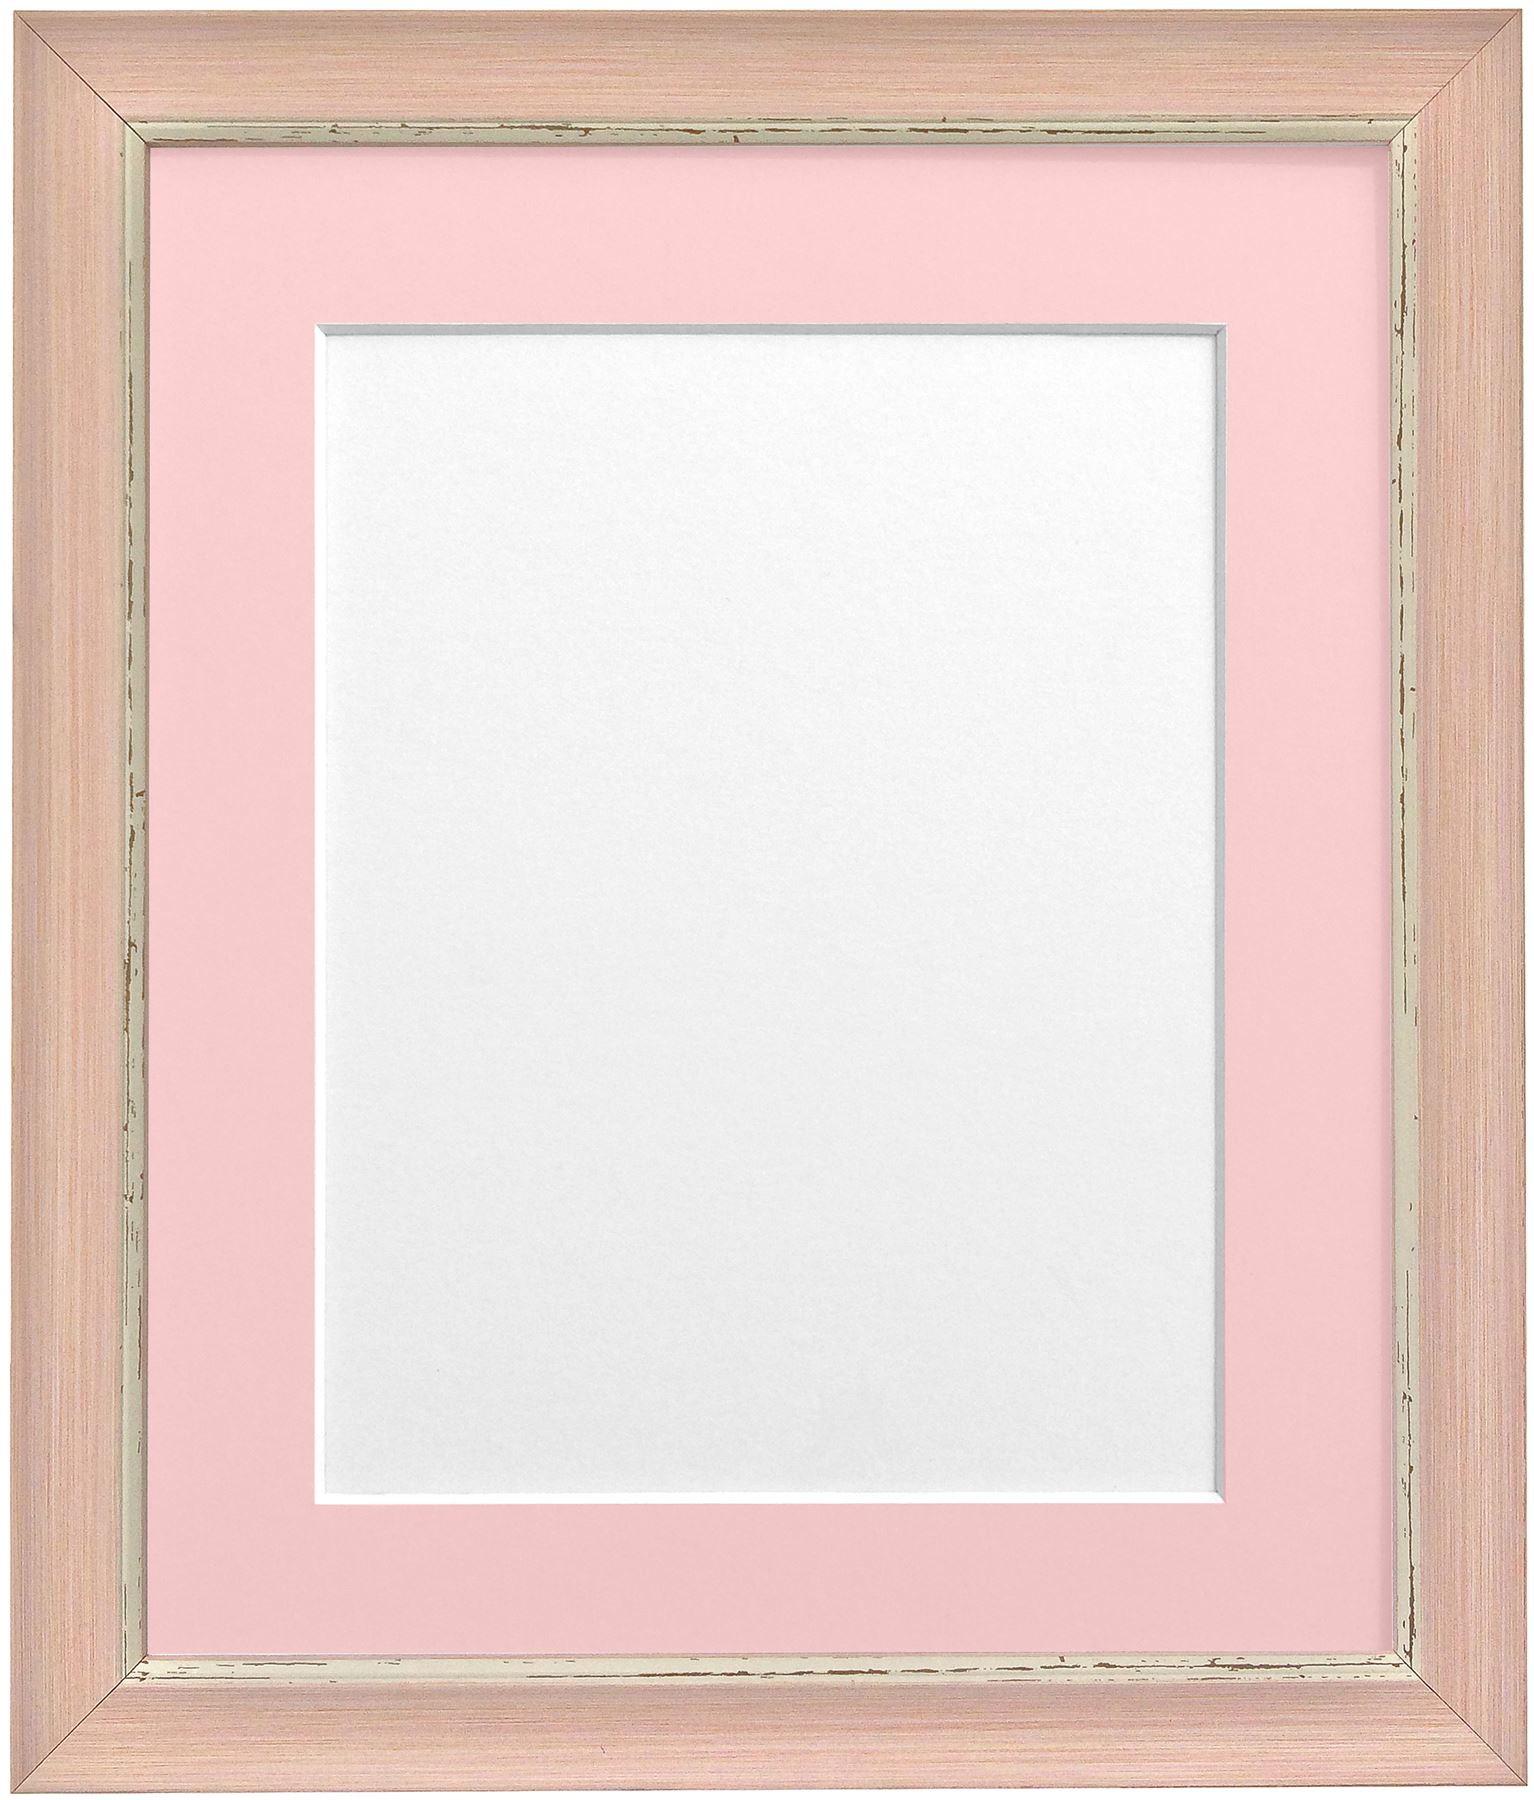 Frames by Post 30 X 40 Cm Nordic Photo Frame for 12 X 10-inch Size ...